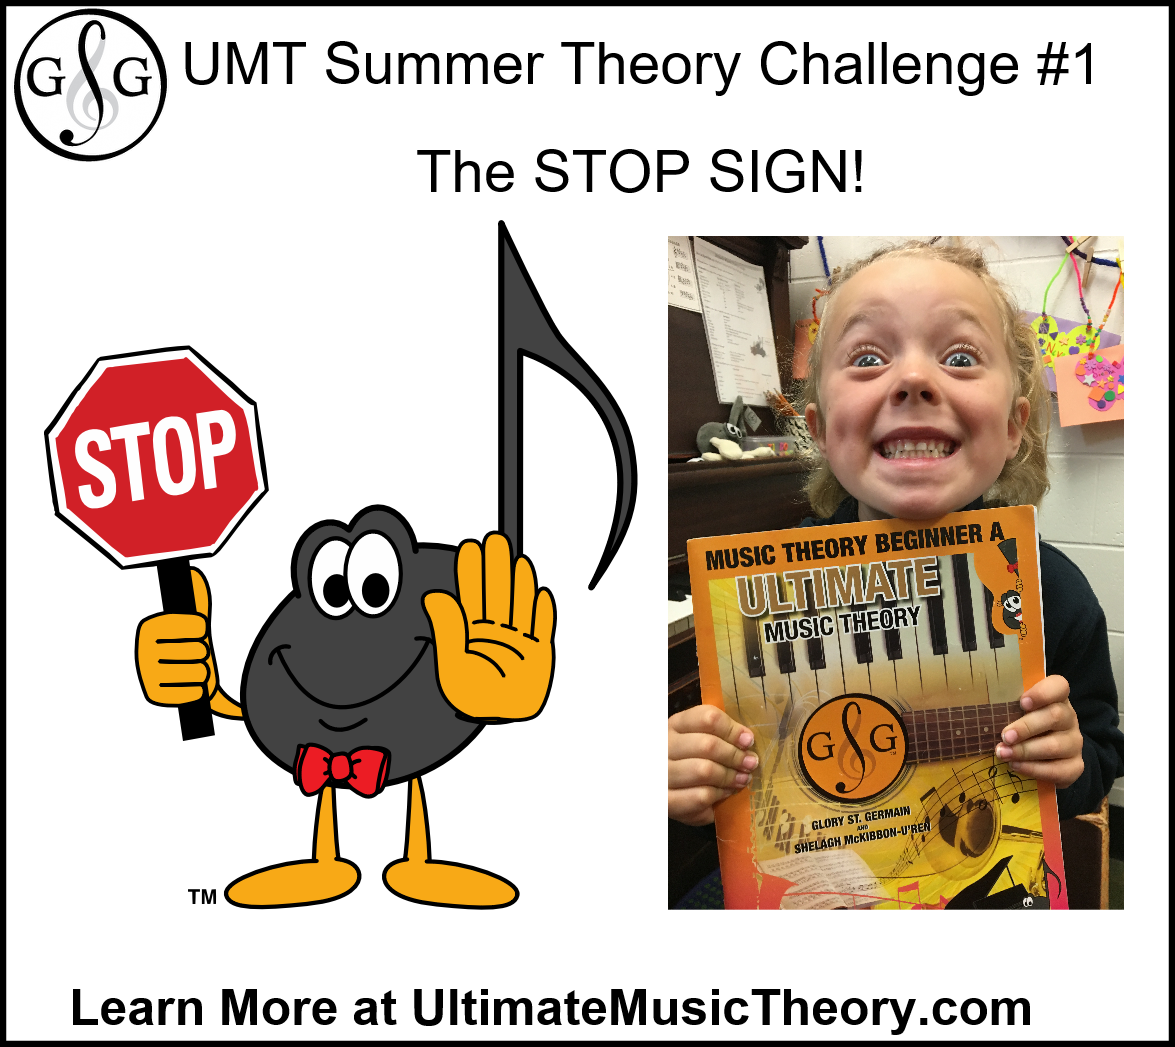 Summer Theory Challenge - The Stop Sign